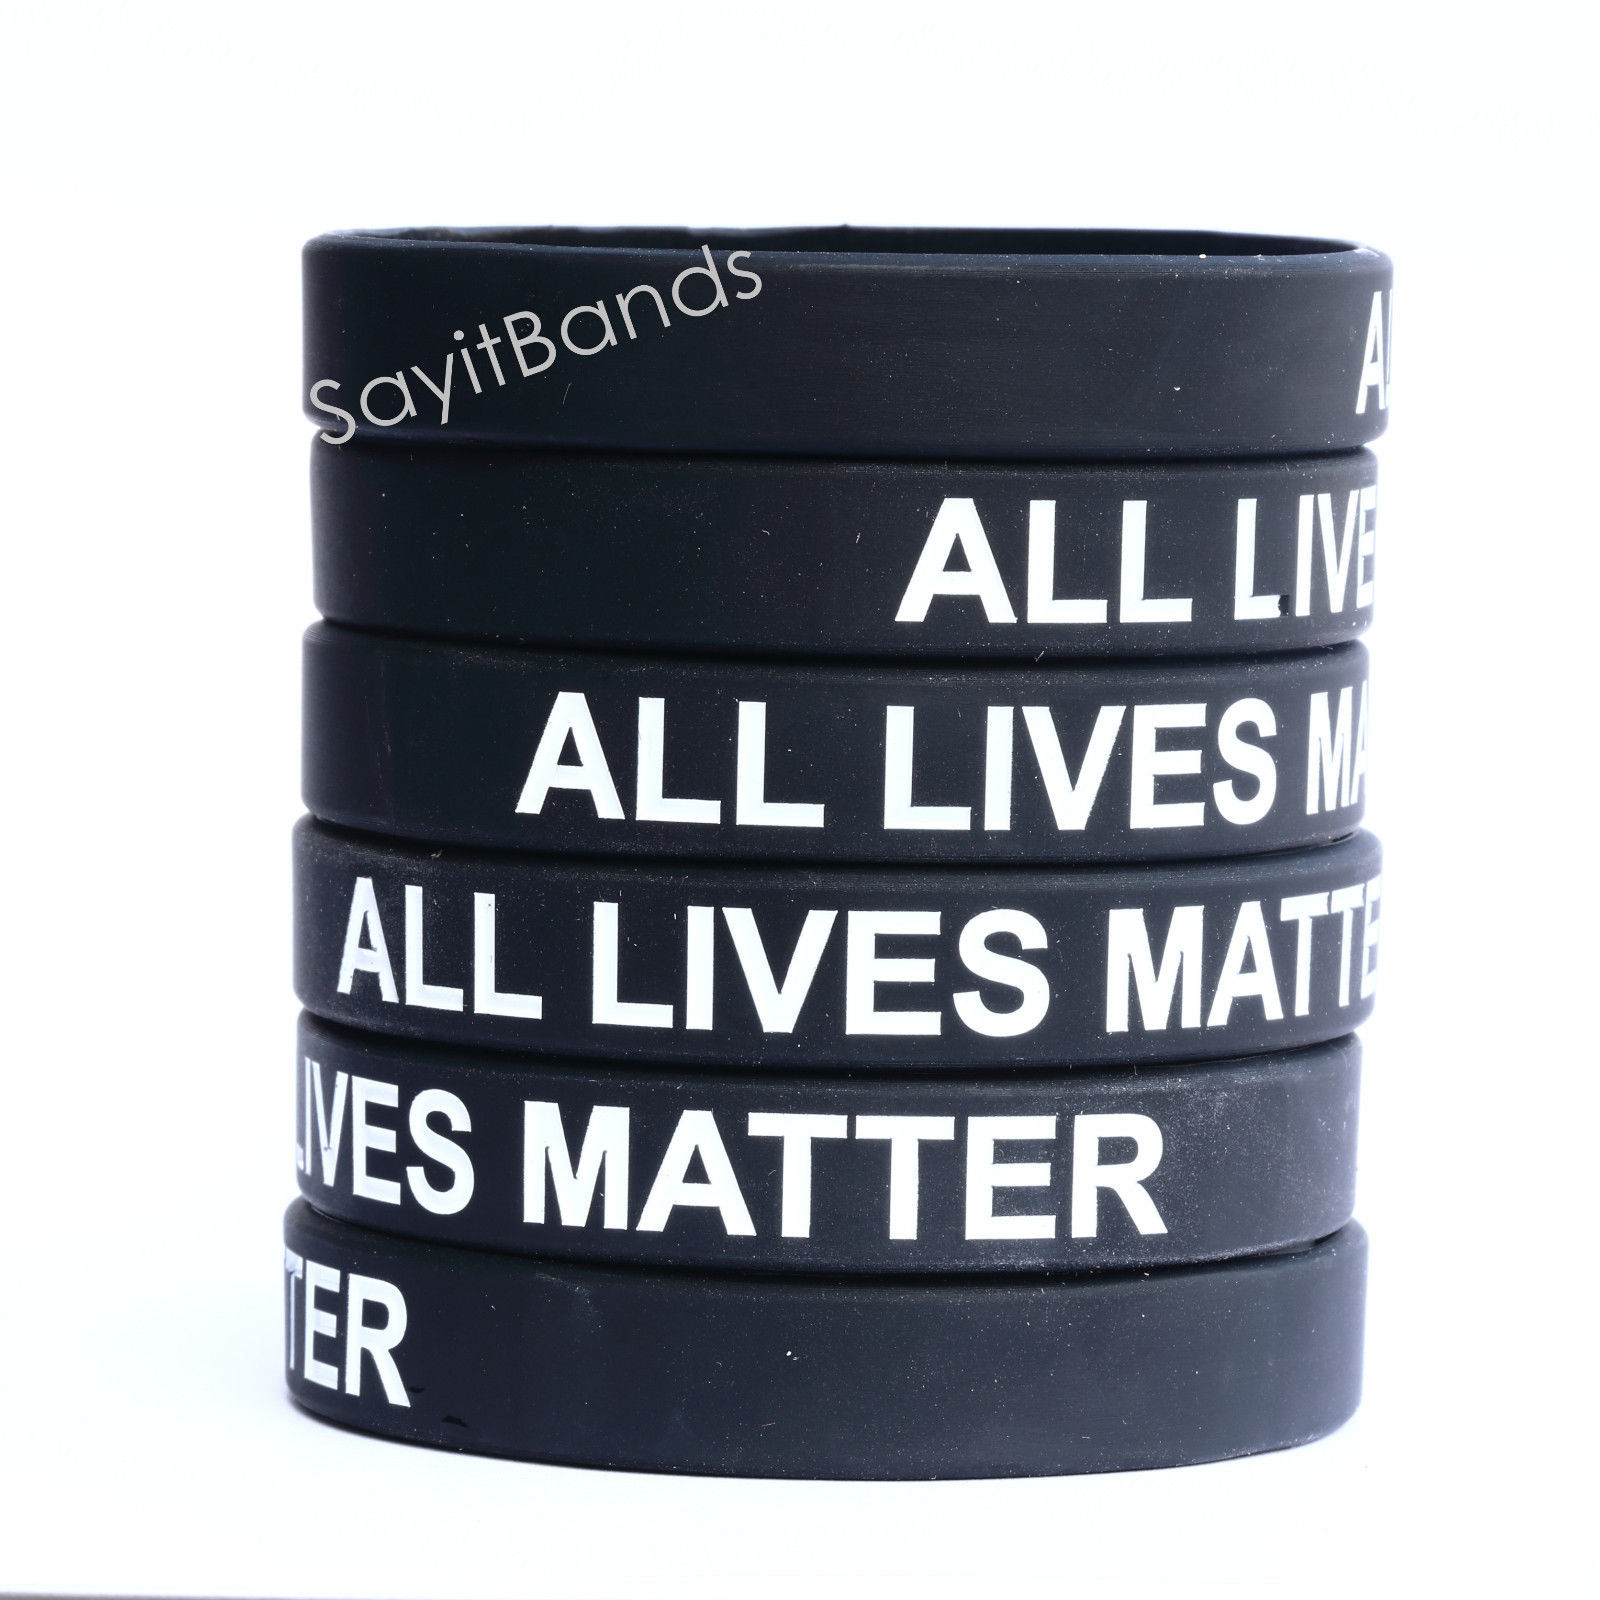 Primary image for 100 ALL LIVES MATTER Silicone Wristband Adult or Child Size - One Hundred Bands